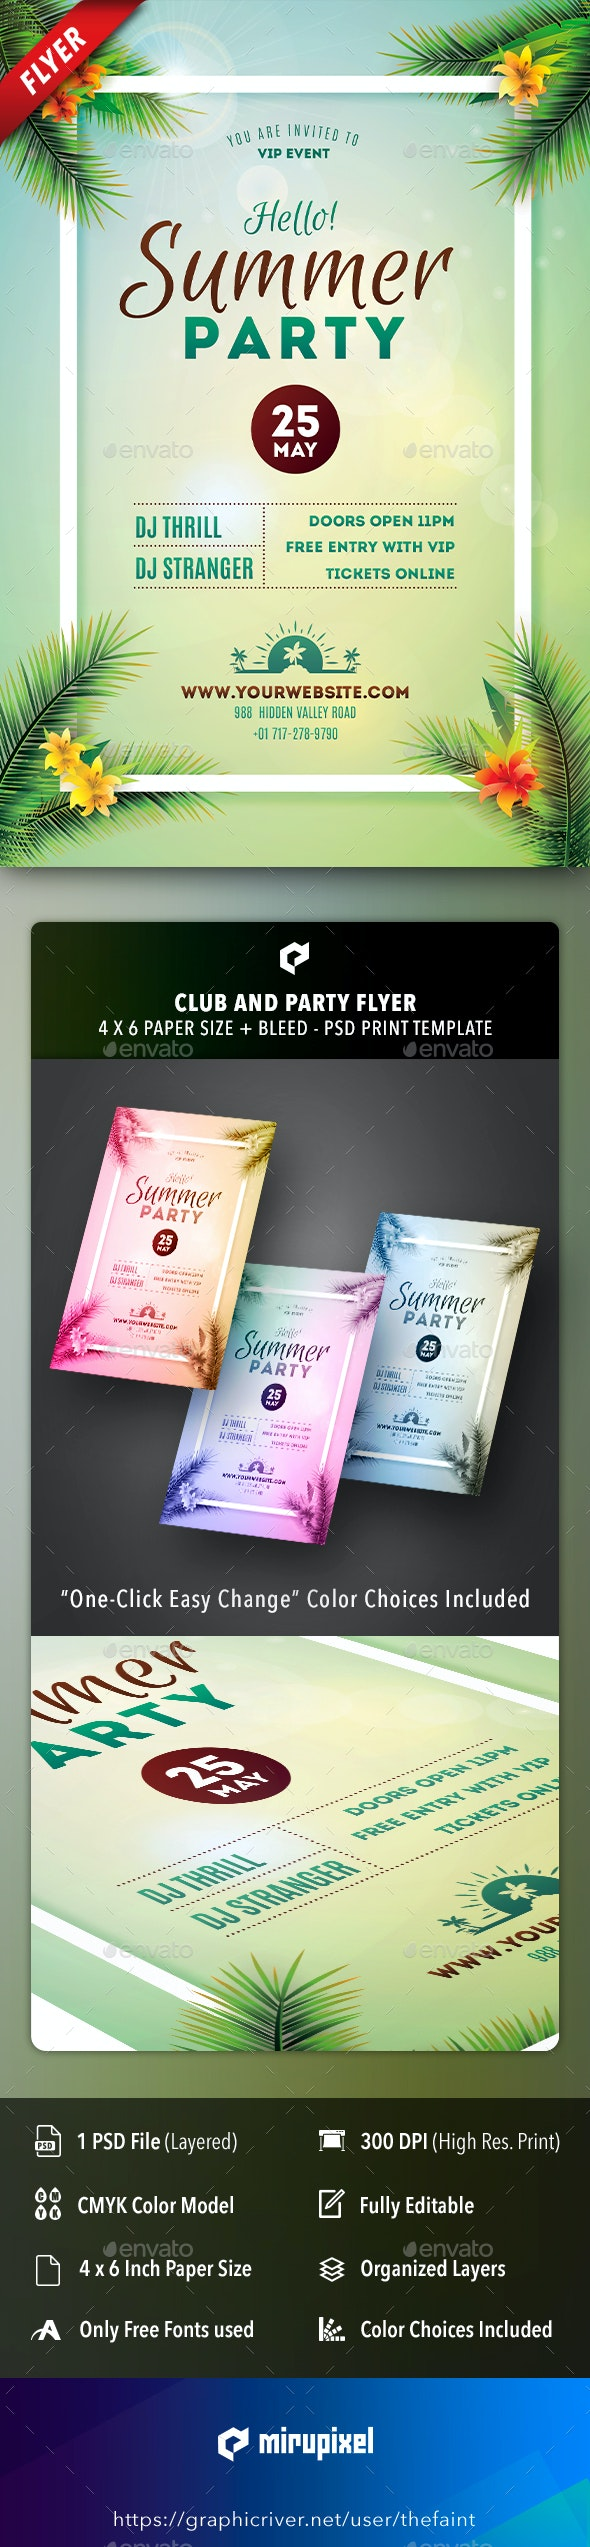 Hello Summer Club and Party Flyer - Clubs & Parties Events